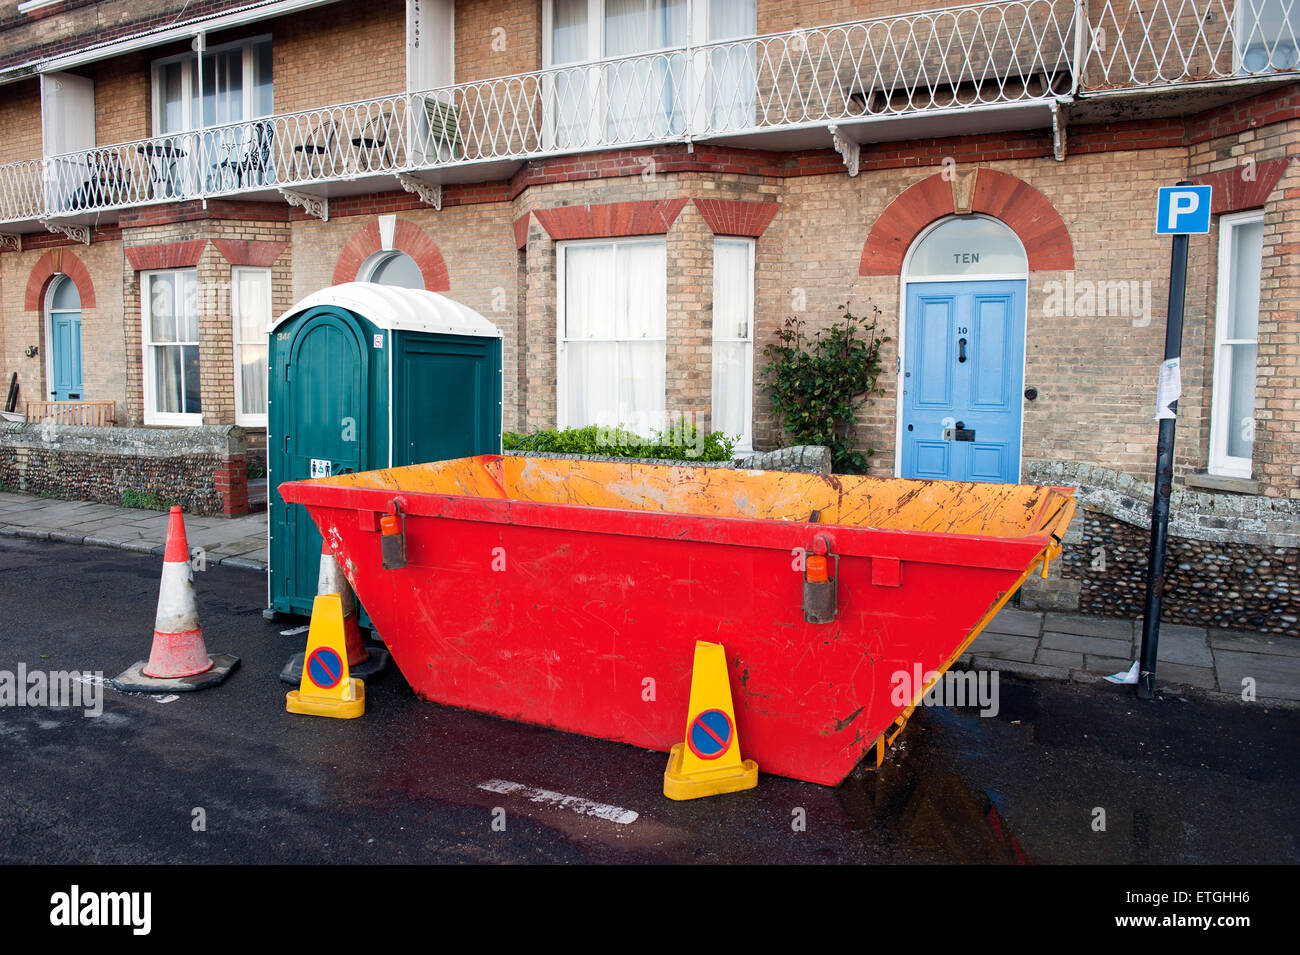 Refuse skip and portable toilet in front of a house in need of renovation, East Anglia England UK Europe - Stock Image